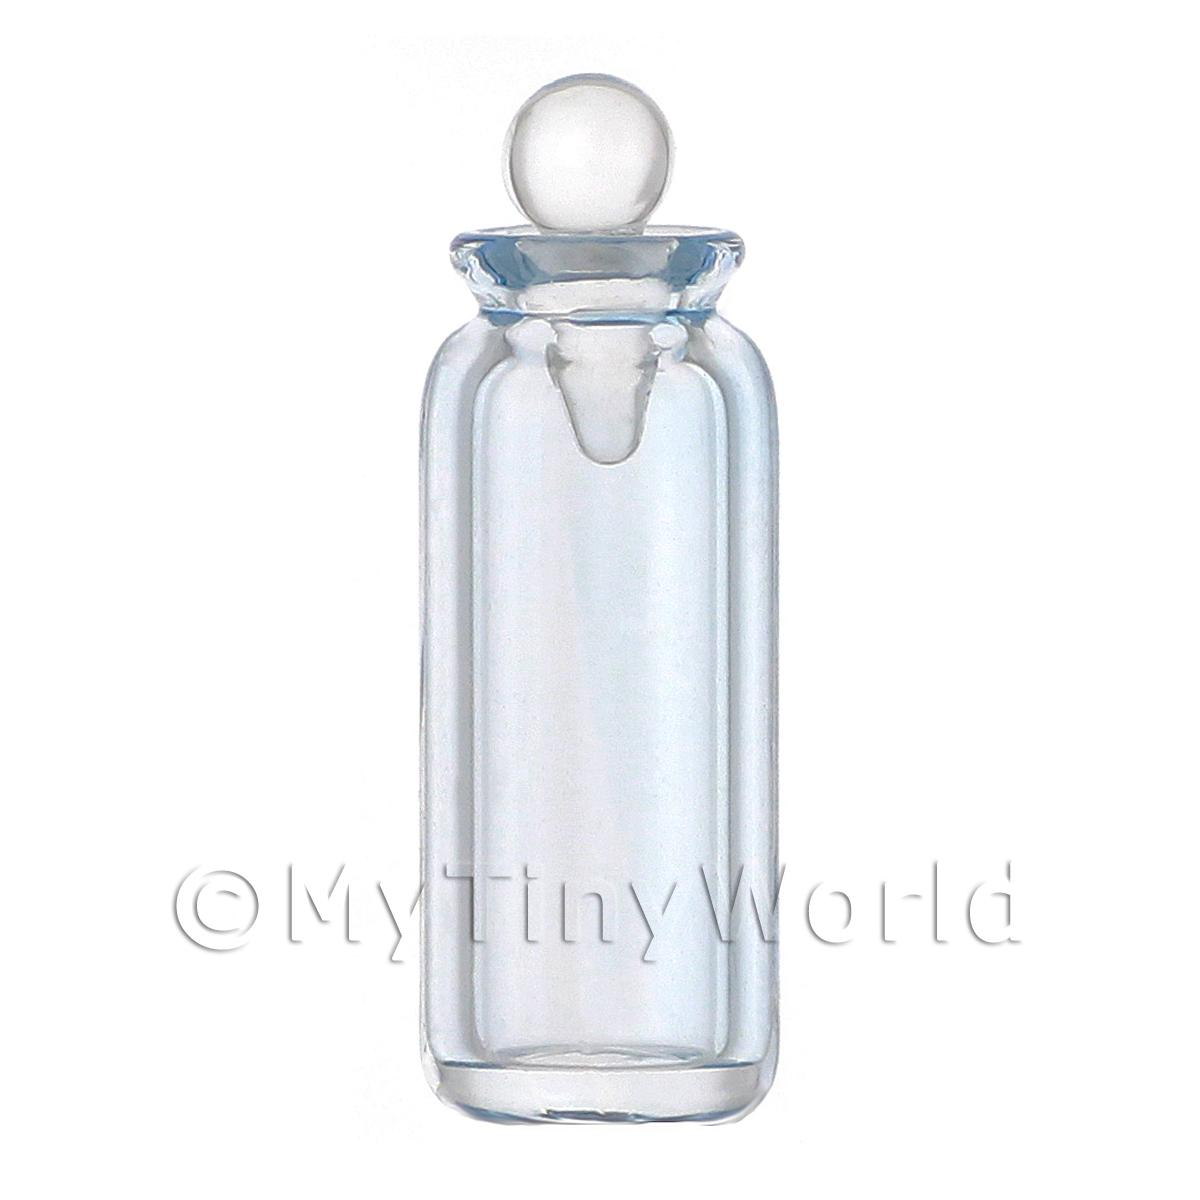 Dolls House Miniature Small Blue Glass Apothecary Bottle